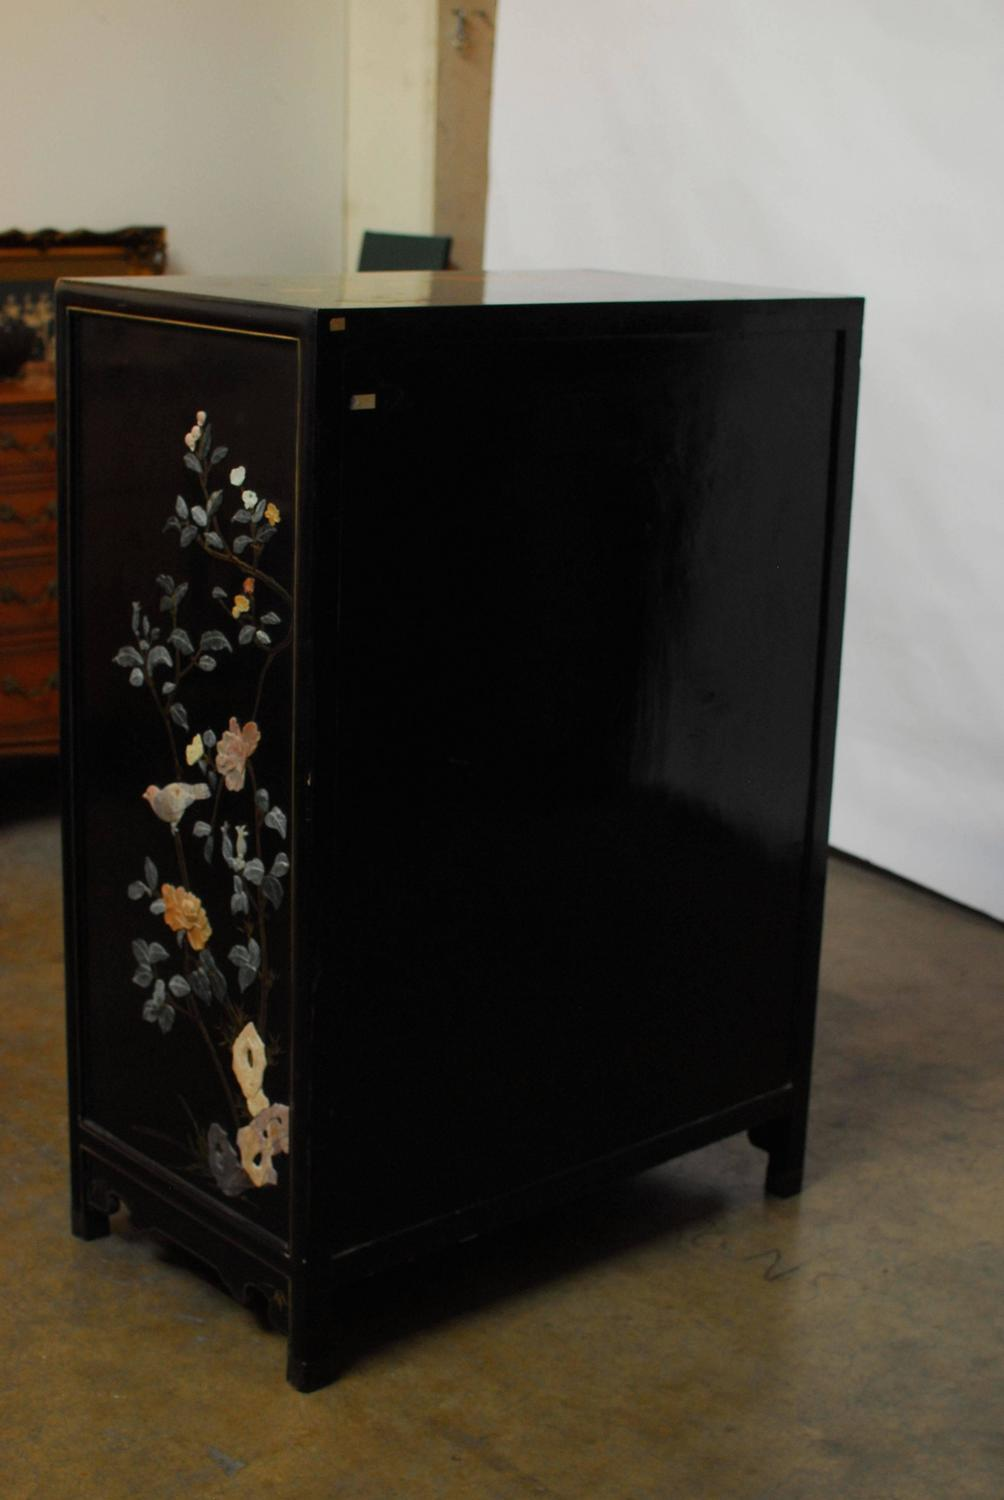 Chinese black lacquer hard stone cabinet at 1stdibs for Chinese black lacquer furniture